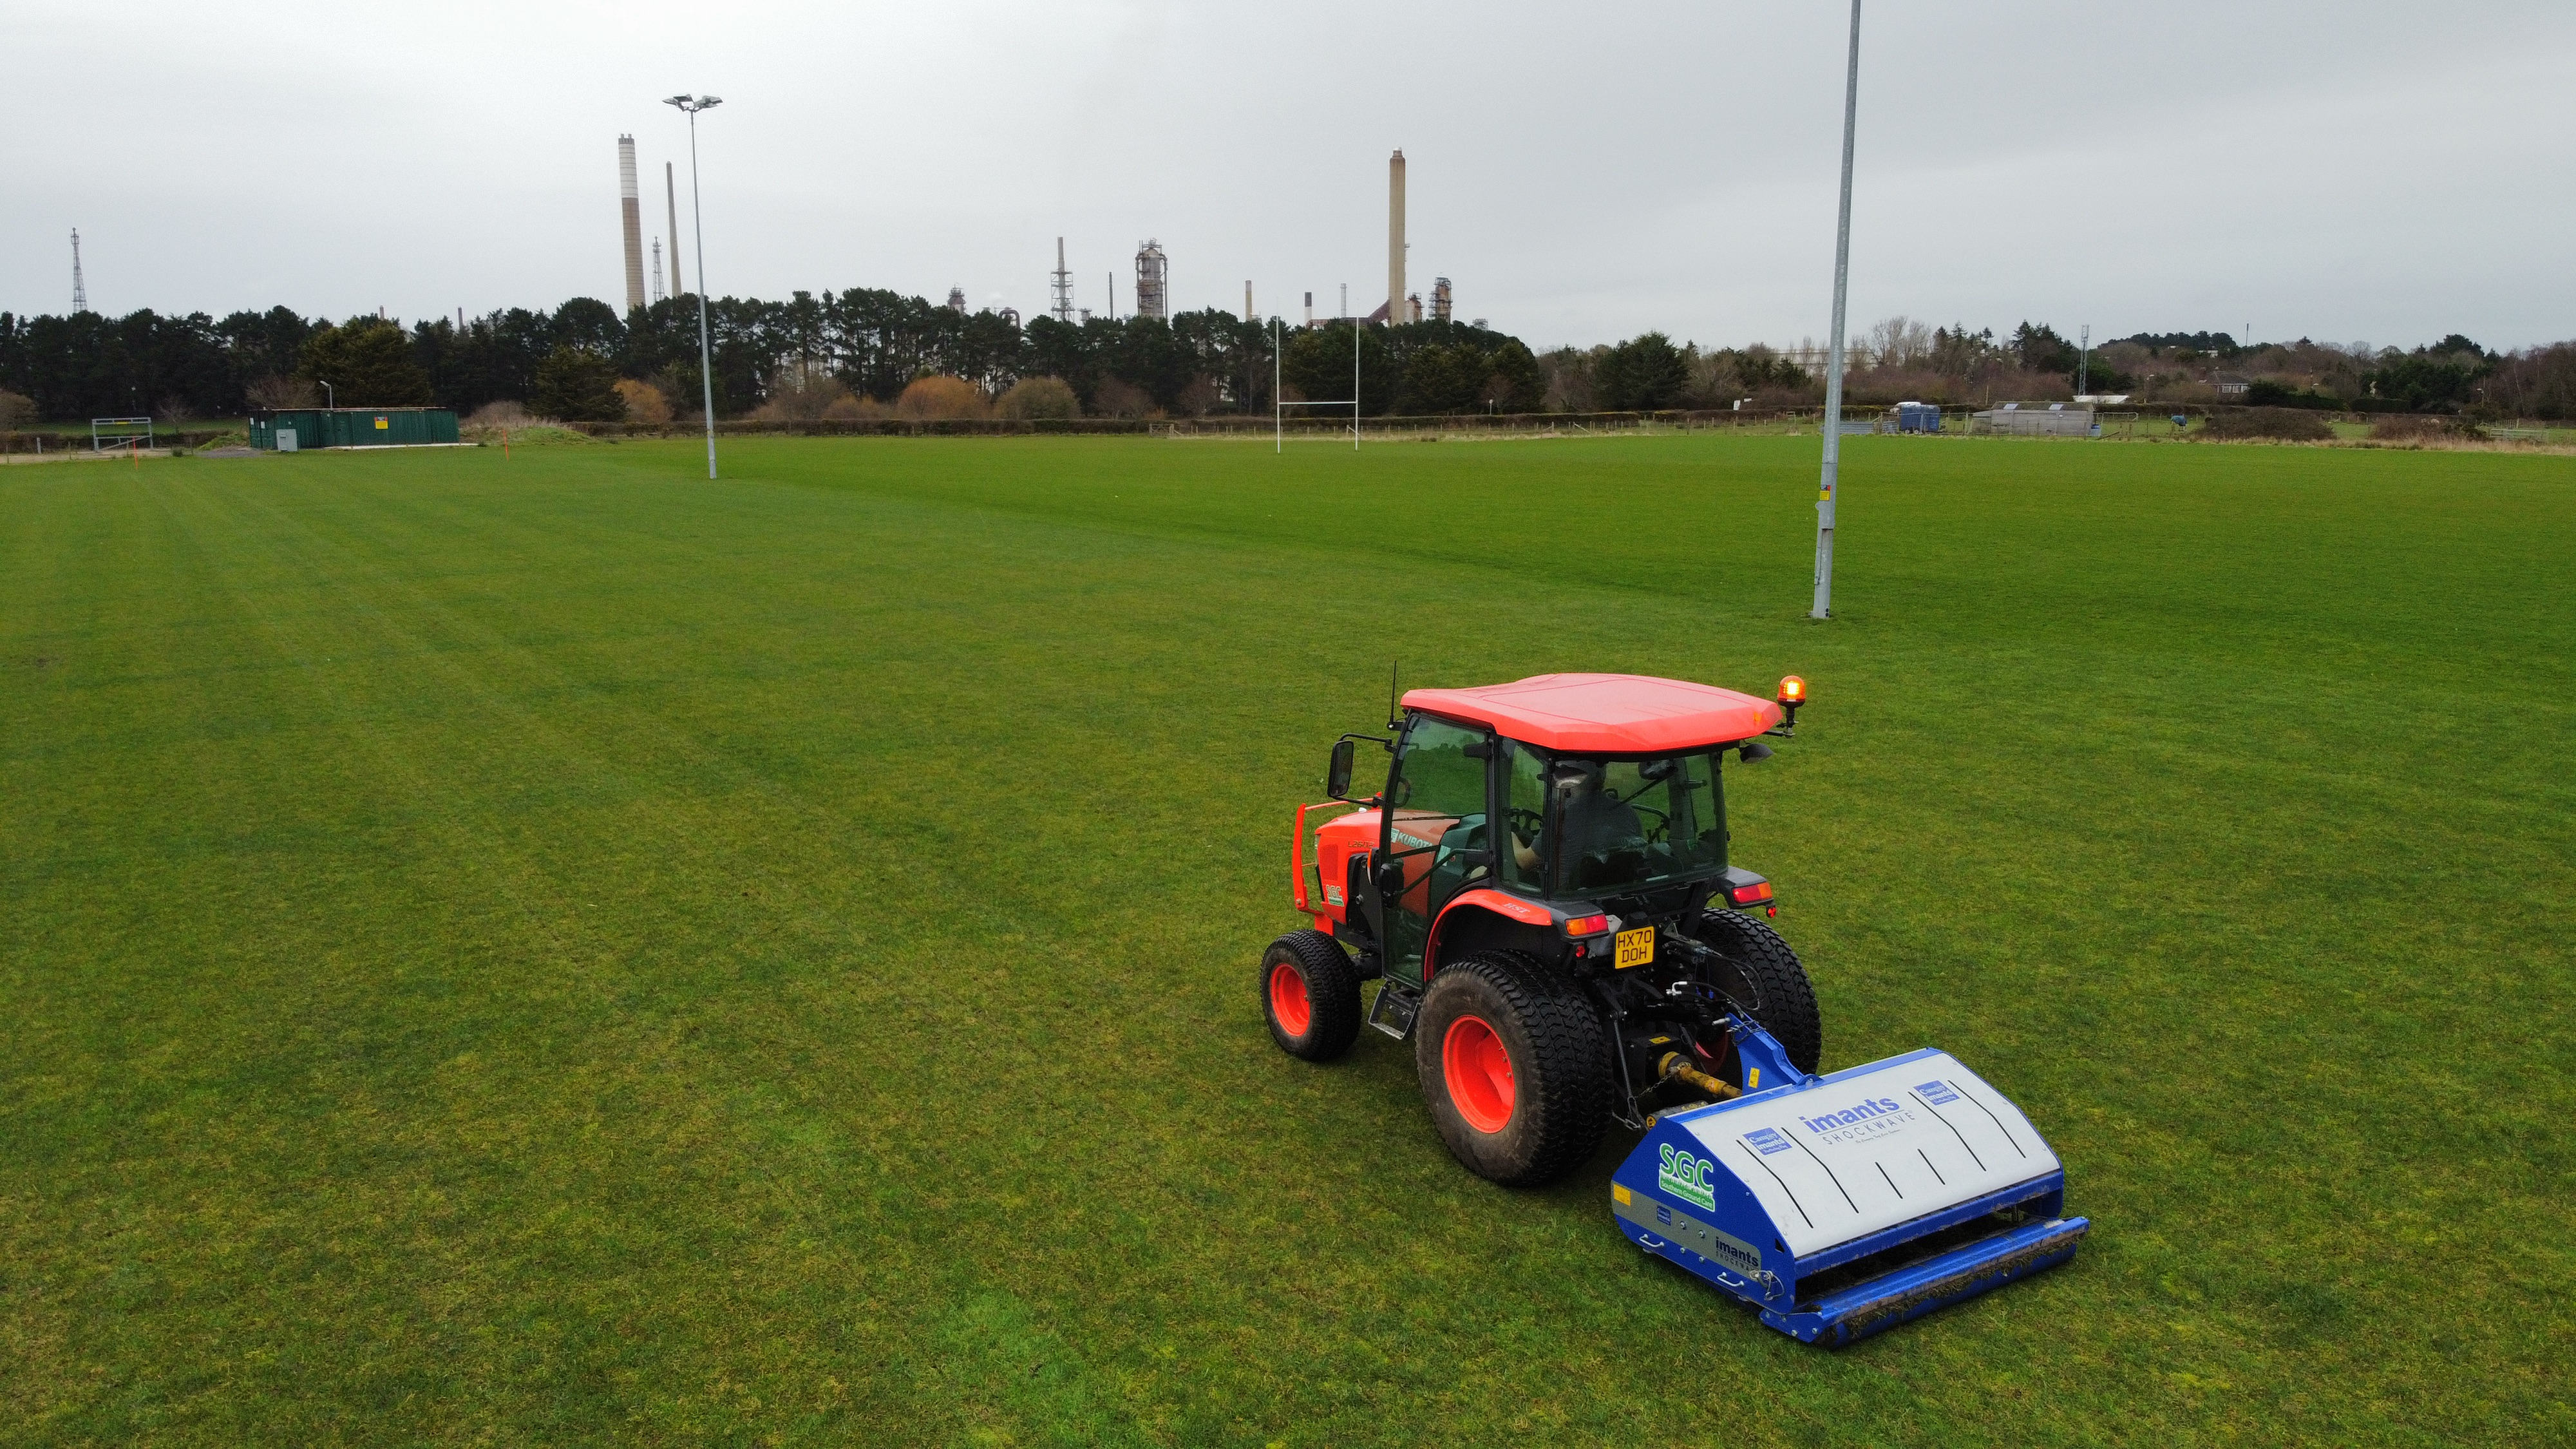 A tractor with shockwave aerator on a rugby pitch